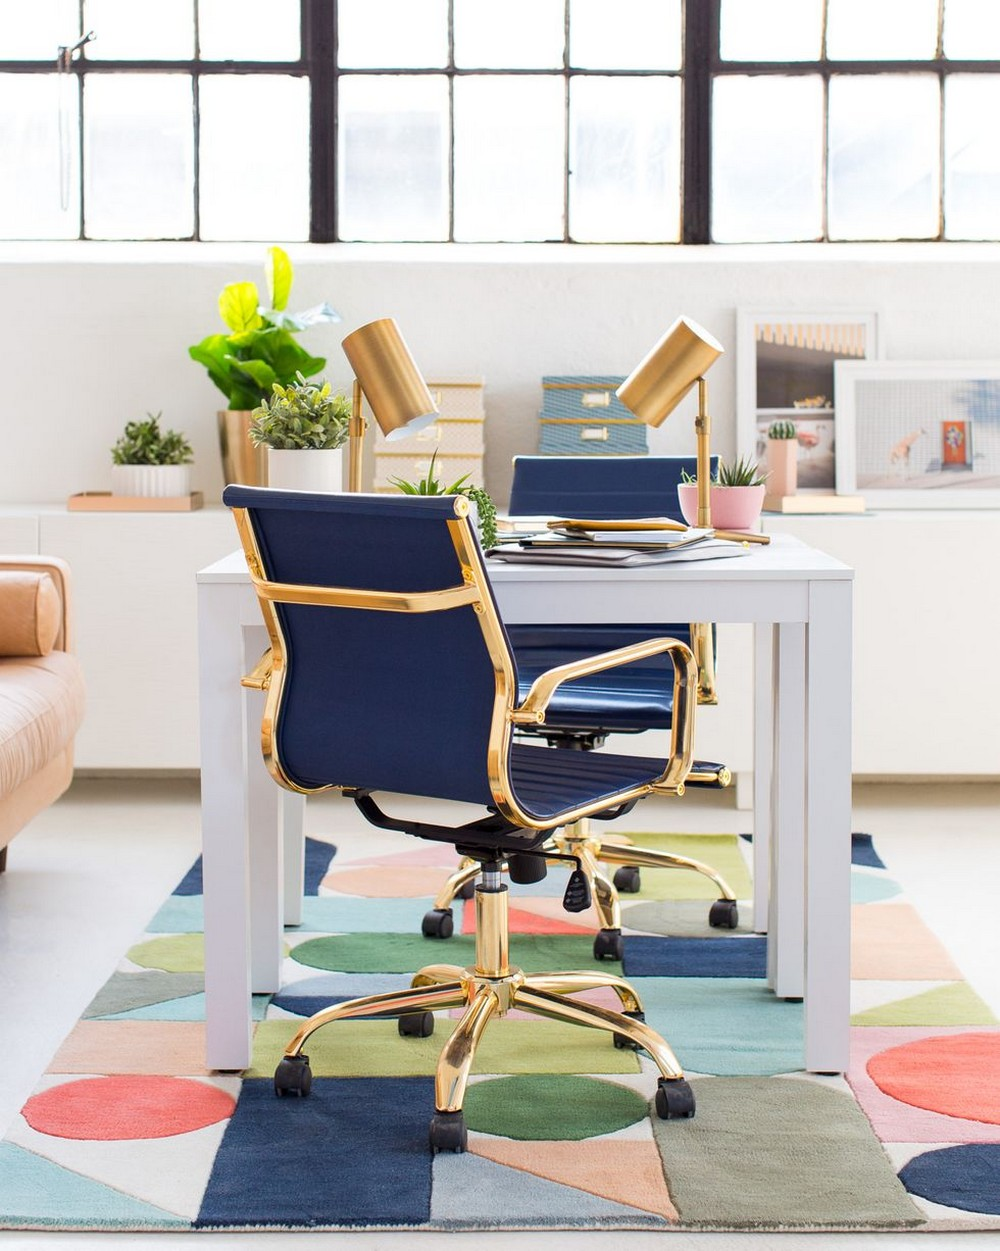 Boast Your Work Creativity by Upgrading Your Home Office Decoration 7 home office decoration Boost Your Work Creativity by Upgrading Your Home Office Decoration Boast Your Work Creativity by Upgrading Your Home Office Decoration 7